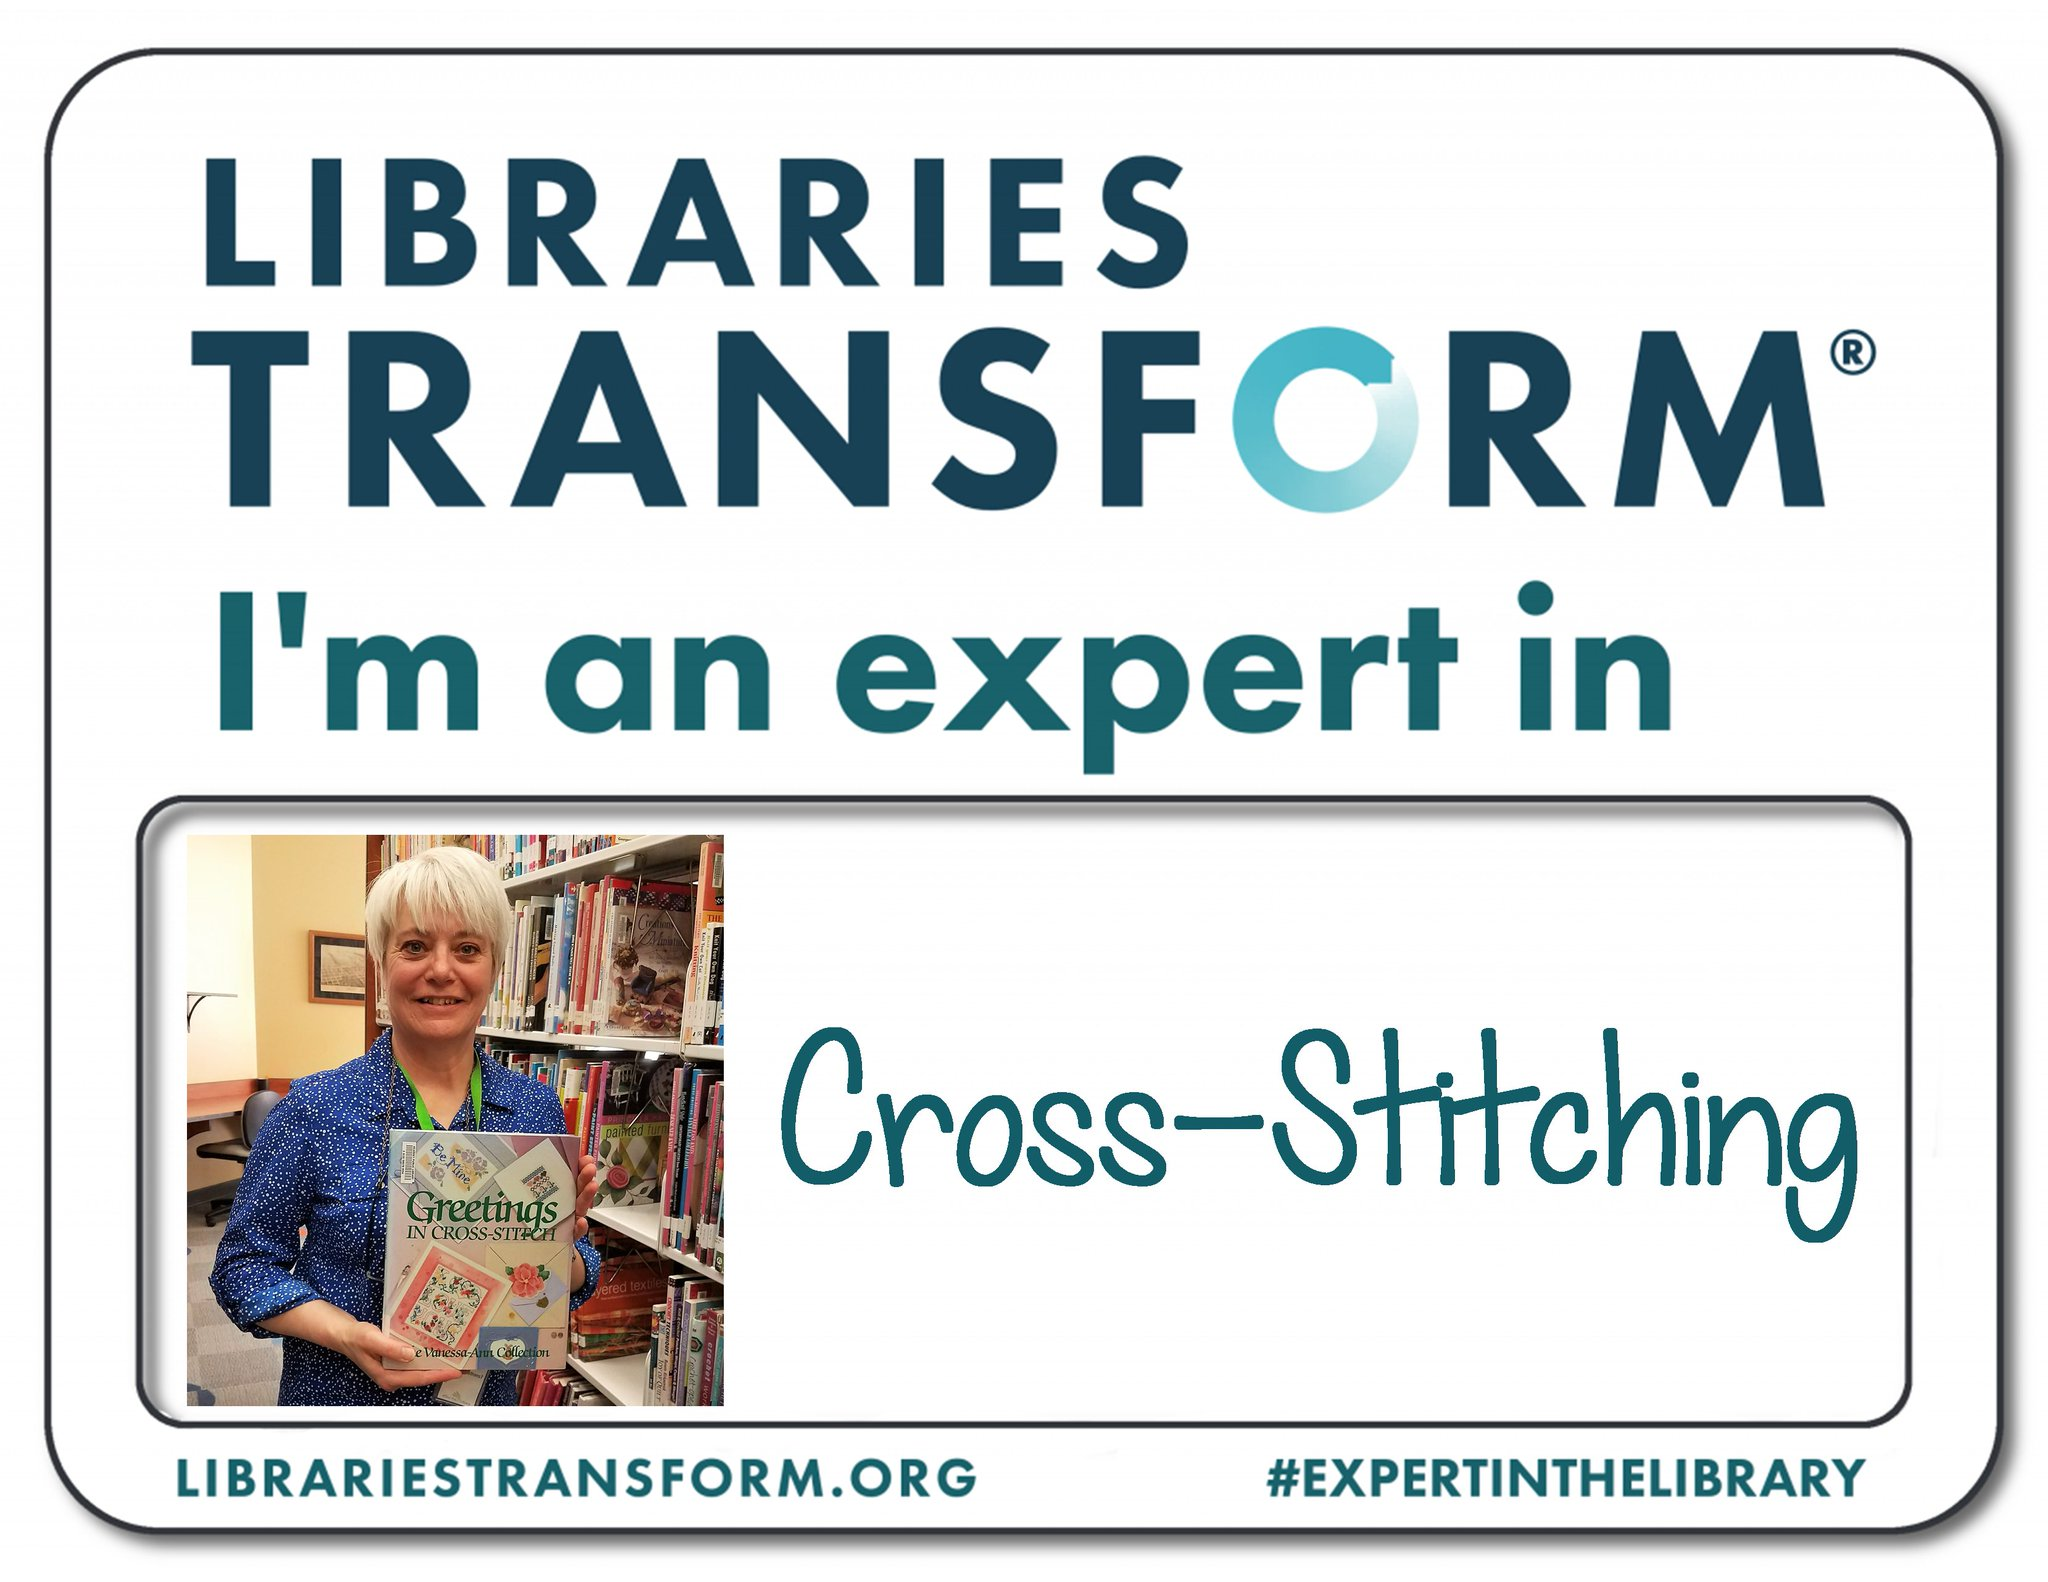 Celebrate #NationalLibraryWeek with us! Meet Kathy, an #ExpertInTheLibrary at KPL. https://t.co/piYnNu3wLS